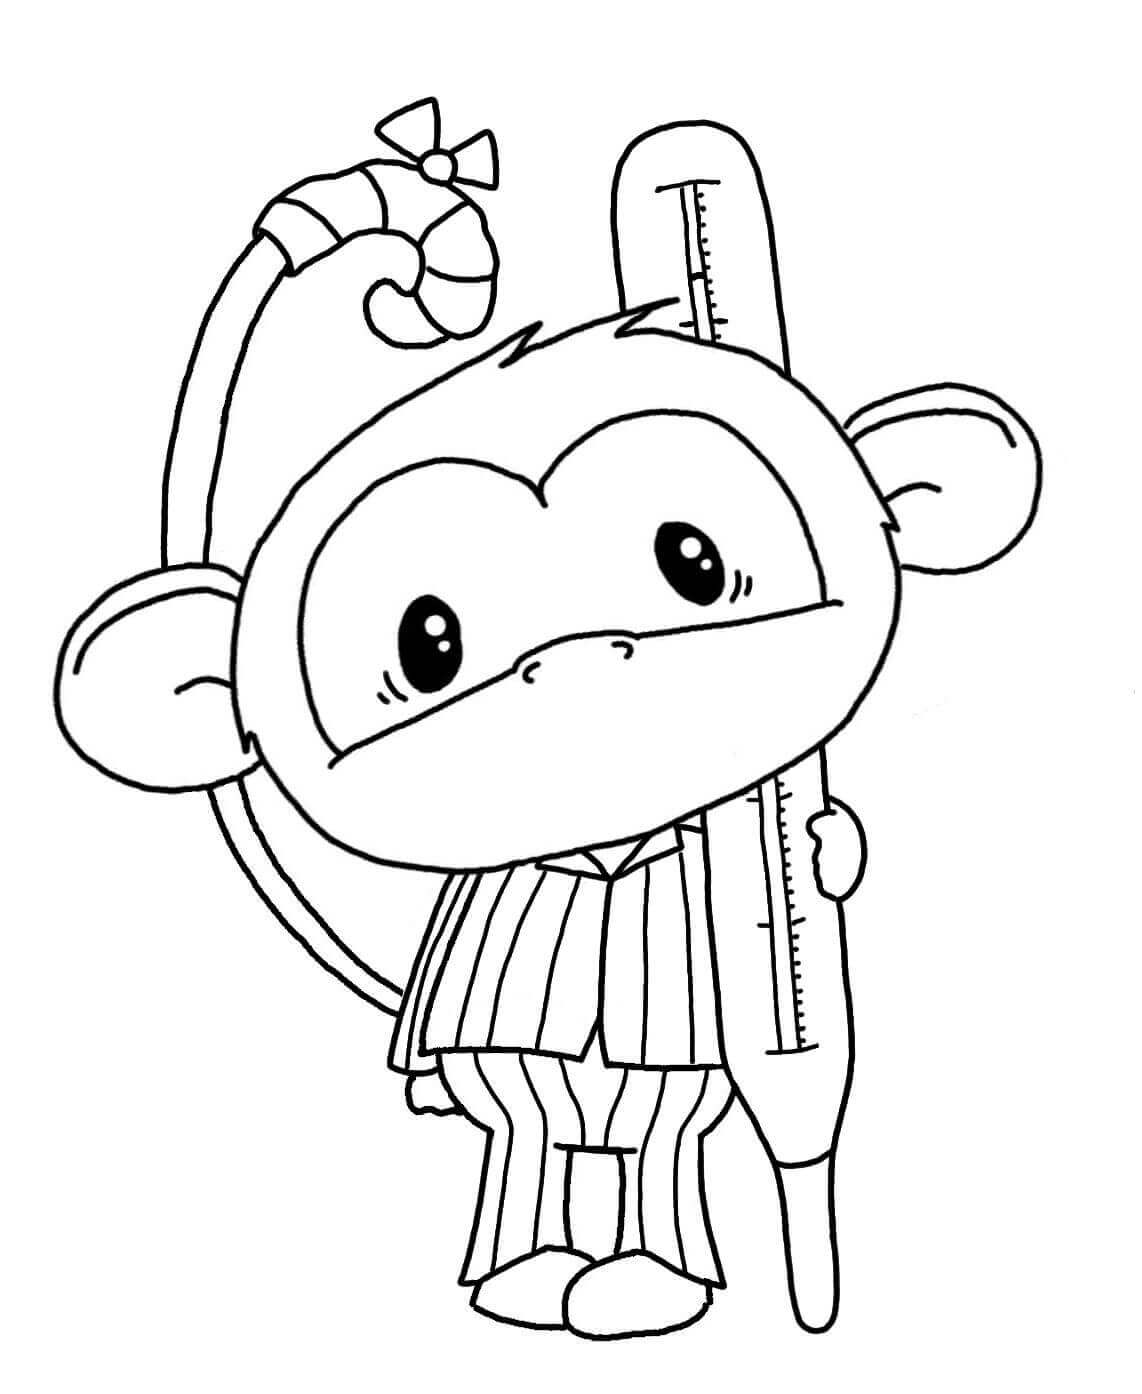 get well soon printable coloring cards get well soon coloring pages to download and print for free get coloring printable cards soon well